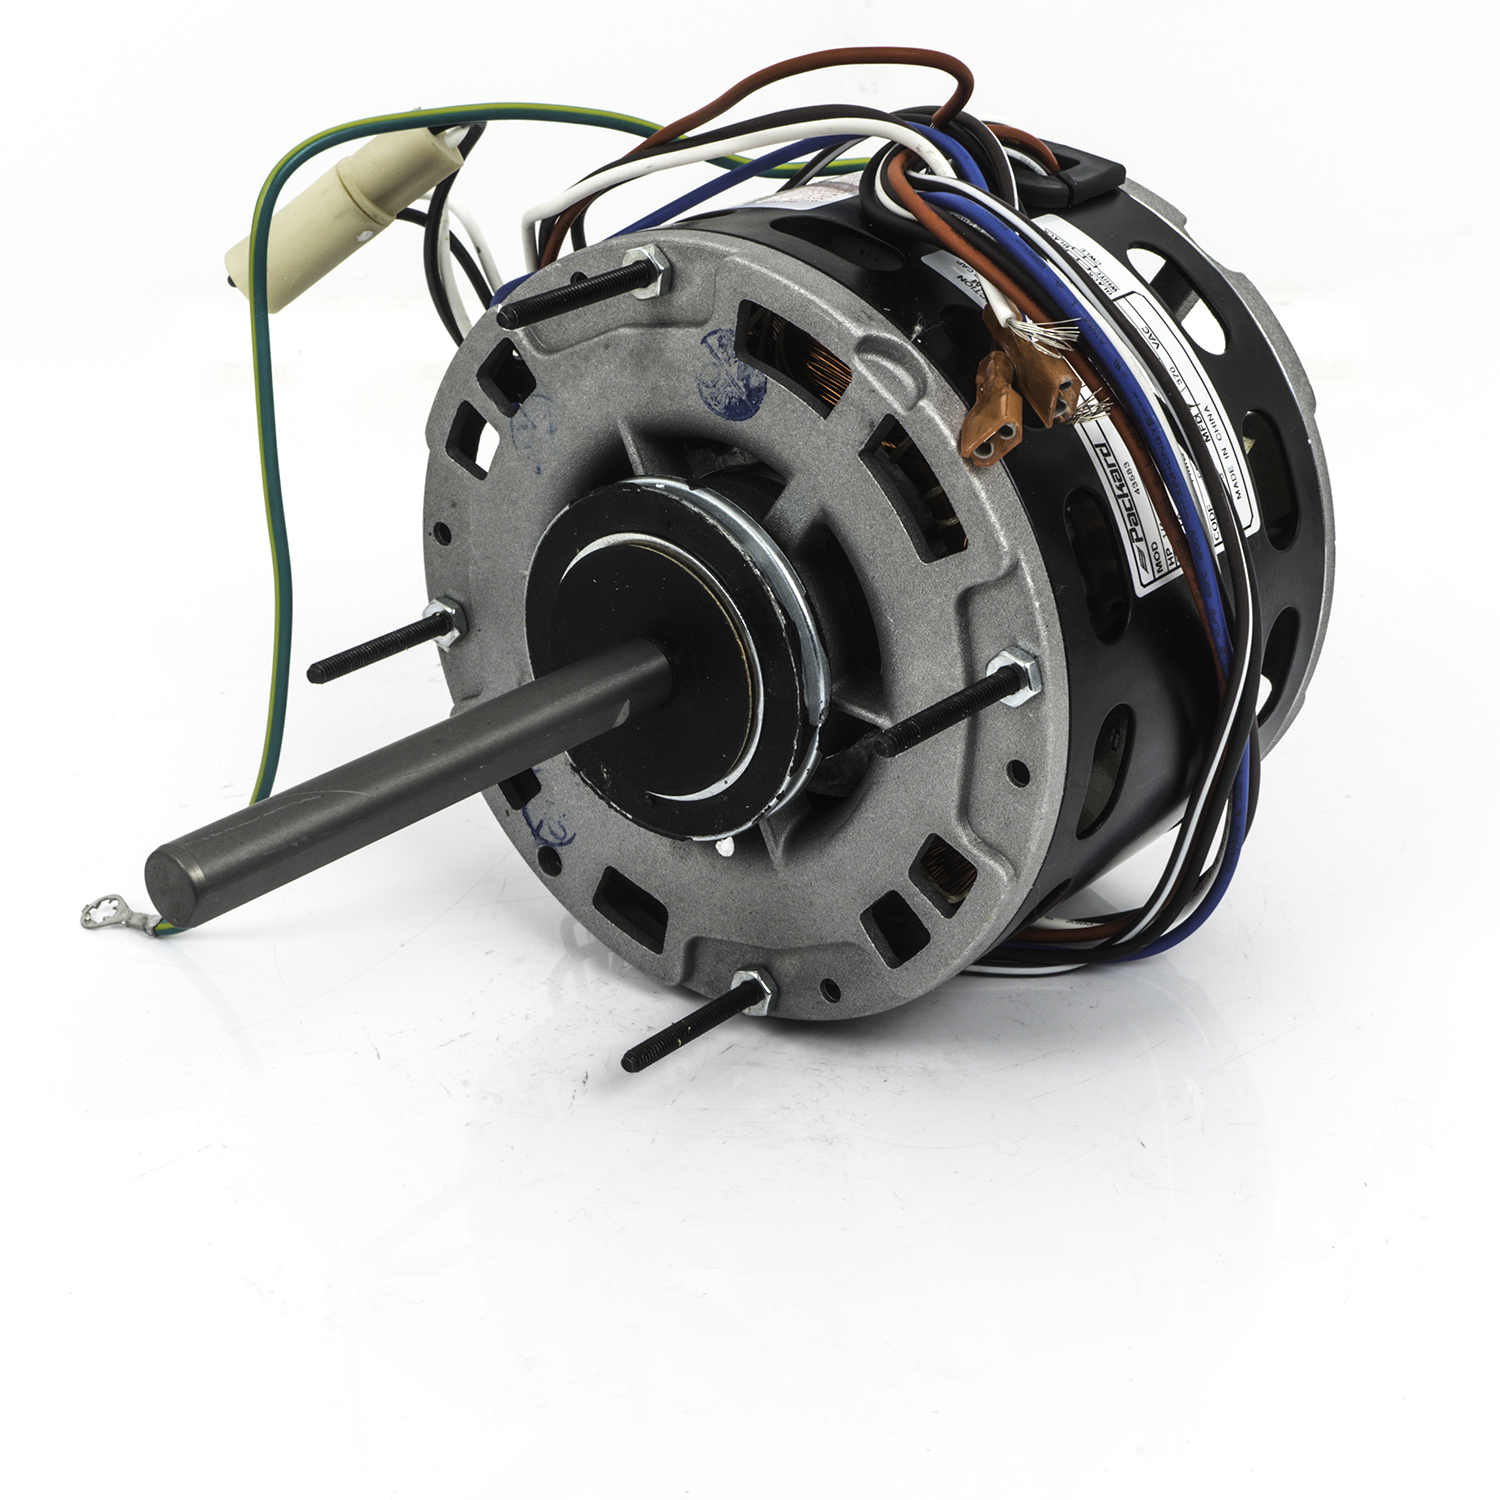 hight resolution of 48 frame direct drive blower motor 1 3 hp 115 volts 1075 rpm packard online